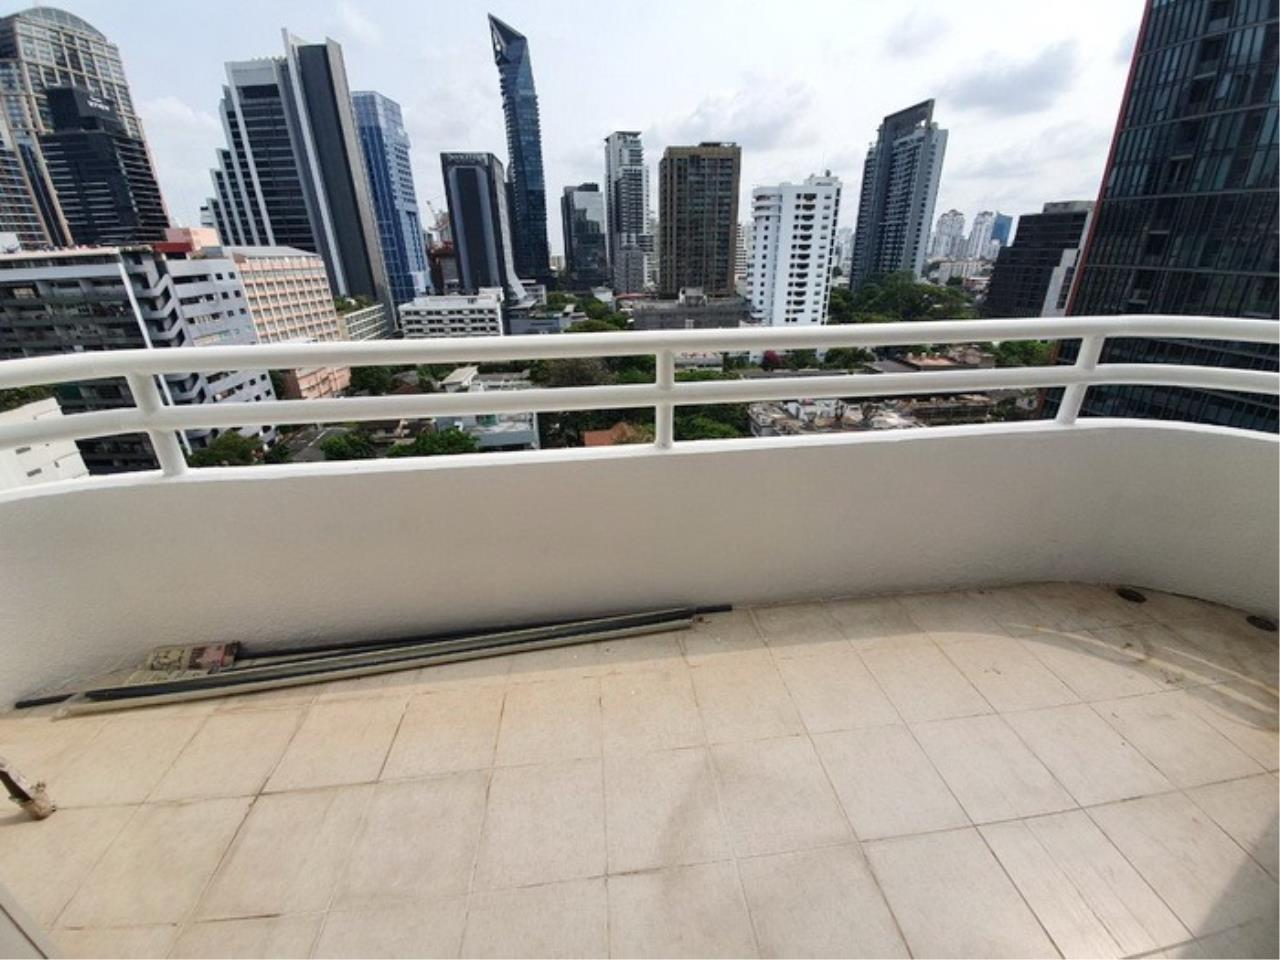 Bestbkkcondos Agency's regent on the park 1 - 250 Sq.M - for rent: 60000 THB - 3 bedrooms,3 bathrooms 3